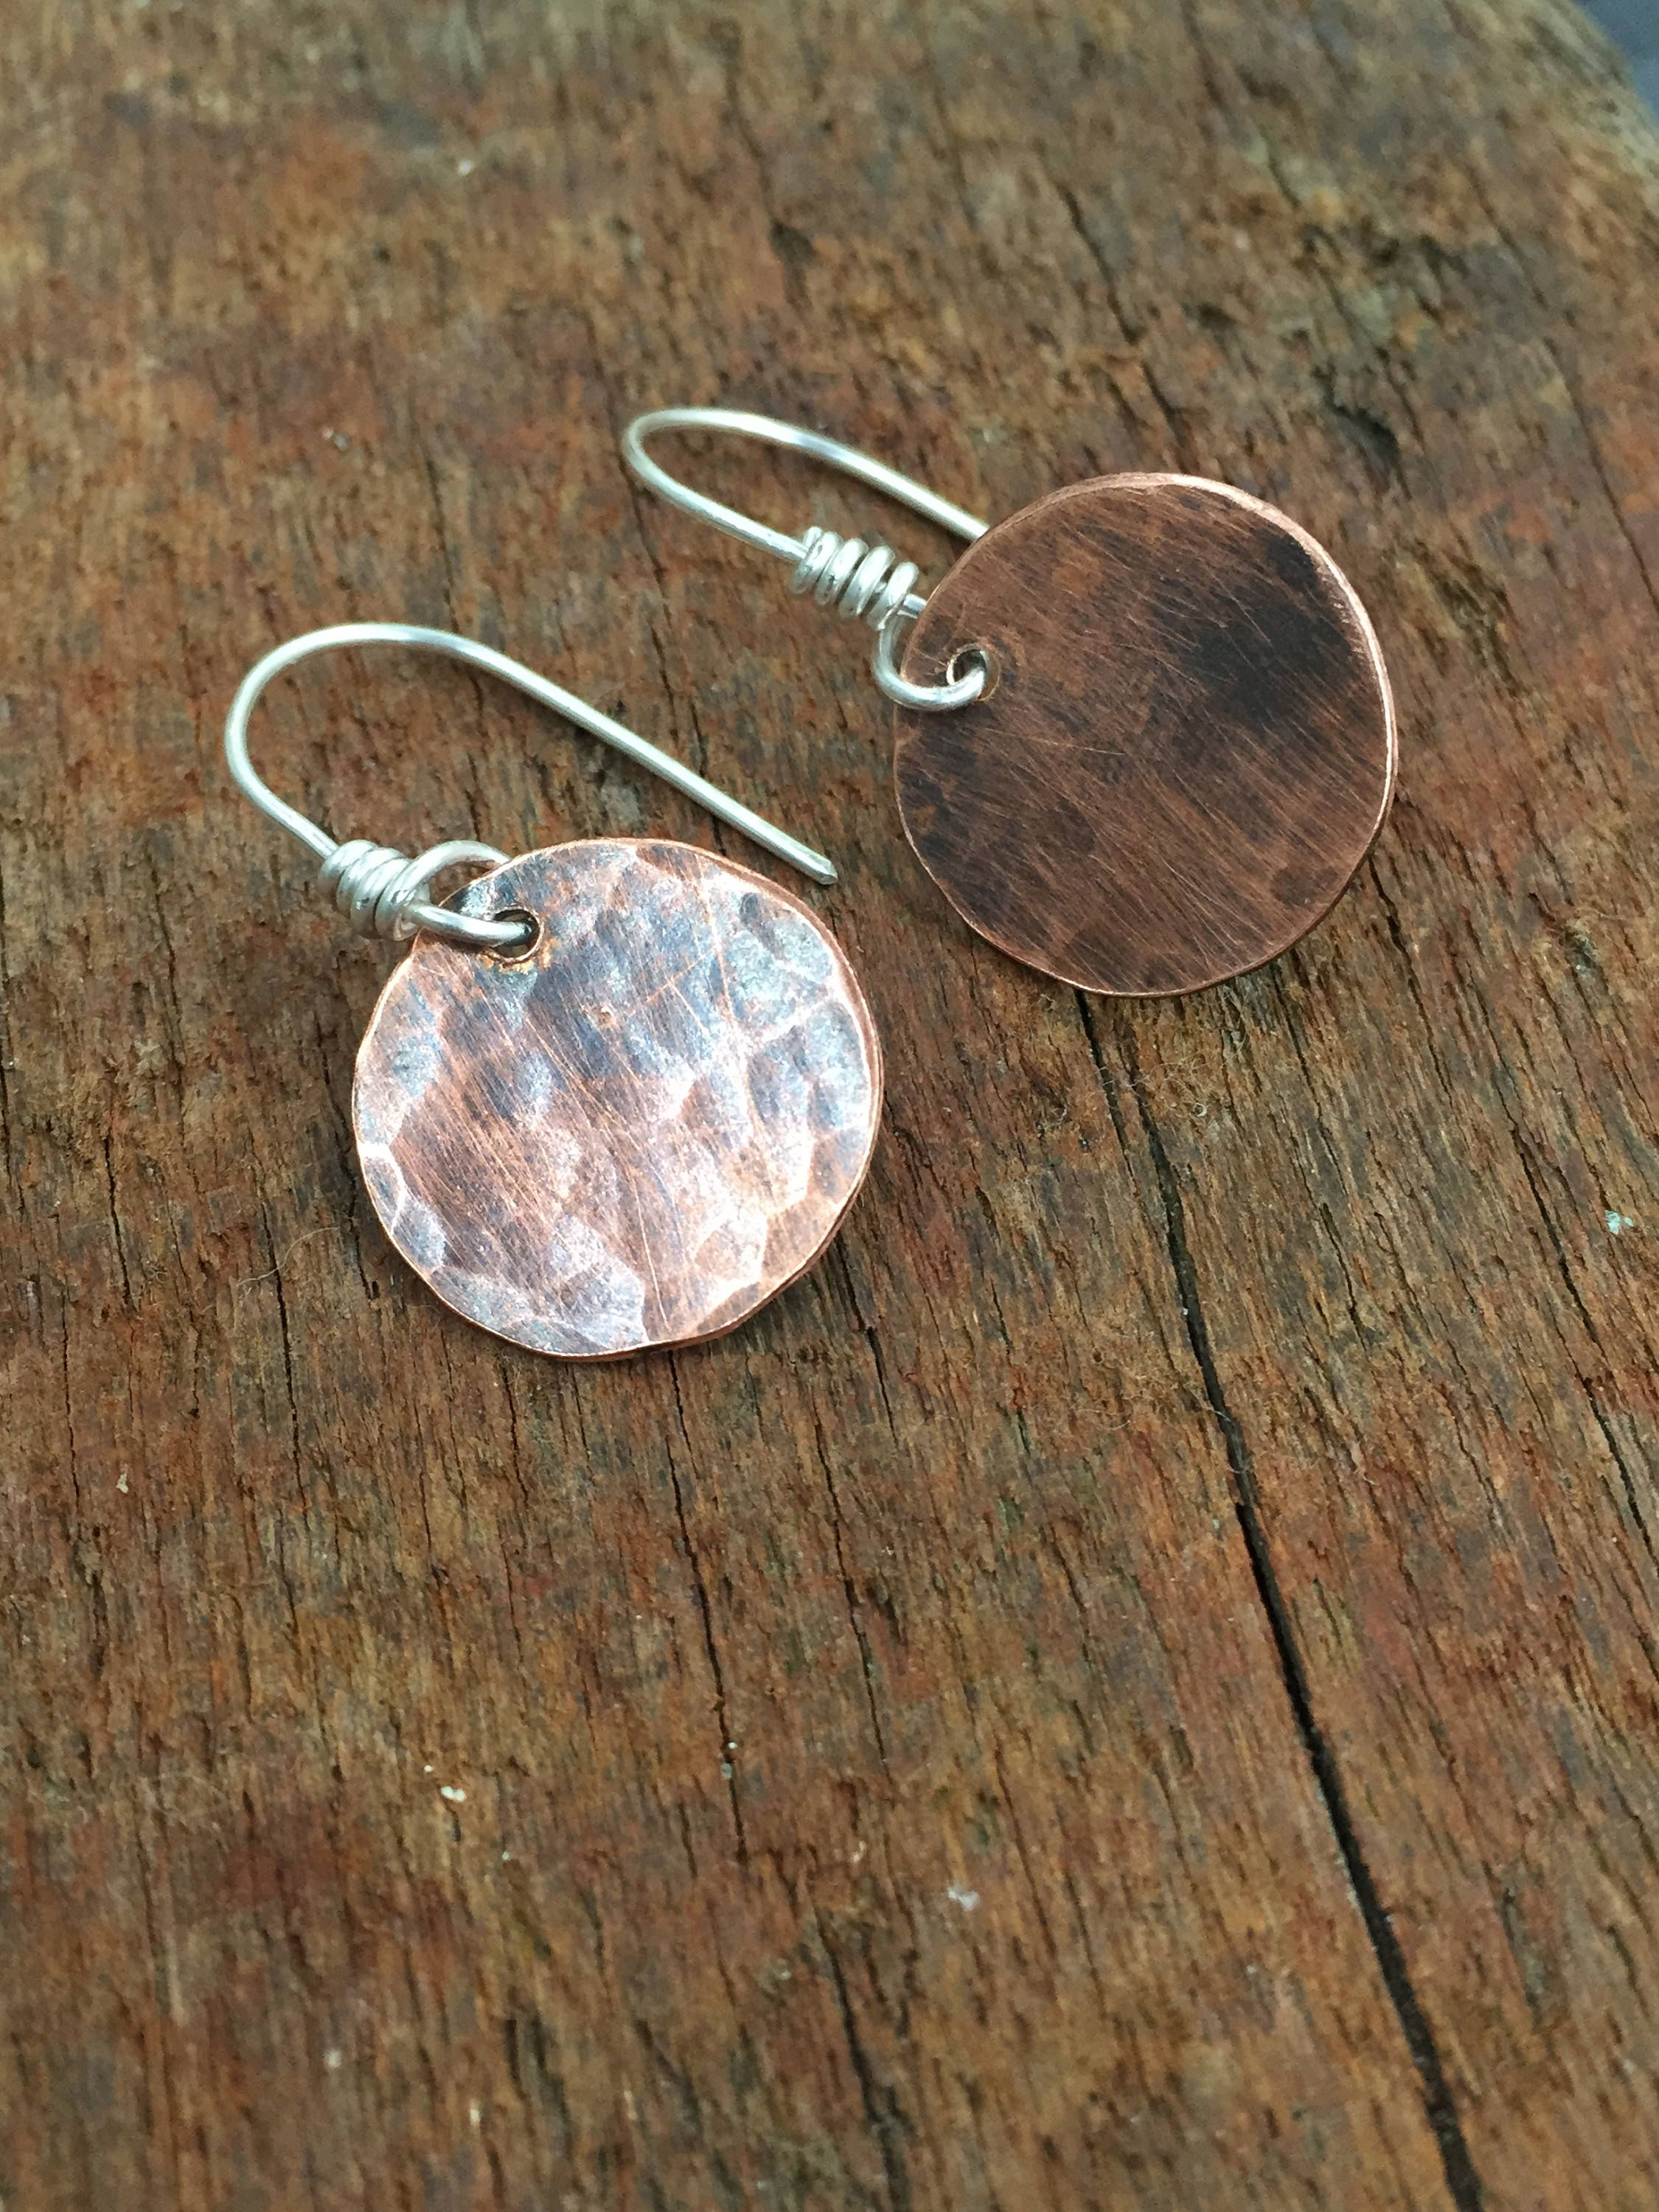 Rustic Earrings Hammered Copper Disc Circle Everyday Handmade Uk Er By Lonelycovejewellery On Etsy